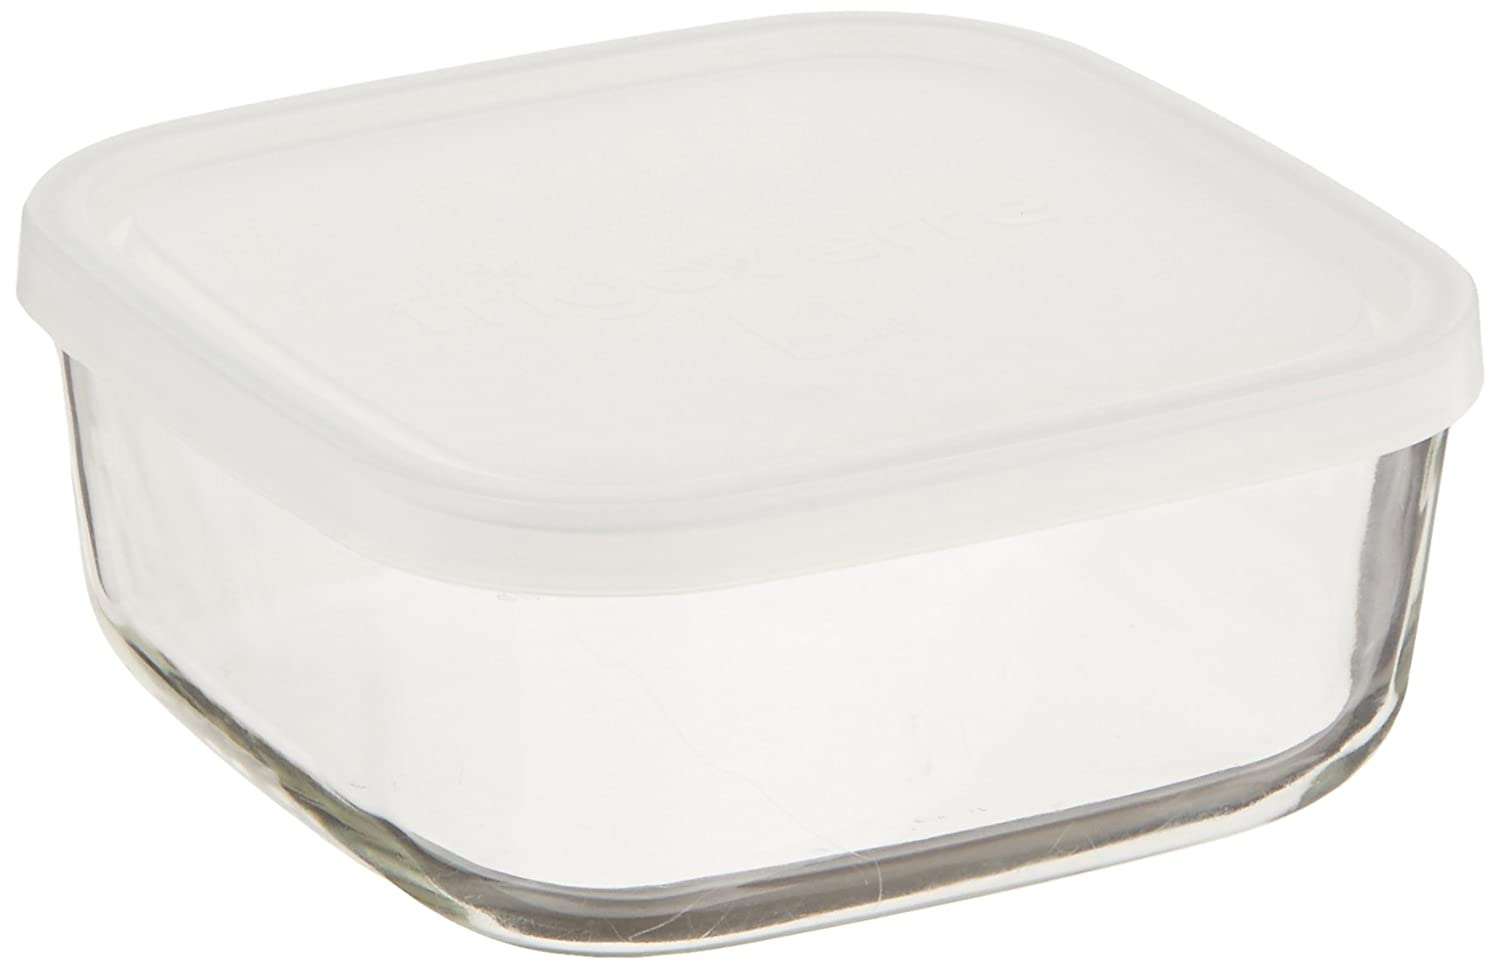 Bormioli Rocco Frigoverre Square Food Container with Frosted Lid, 25-1/2-Ounce